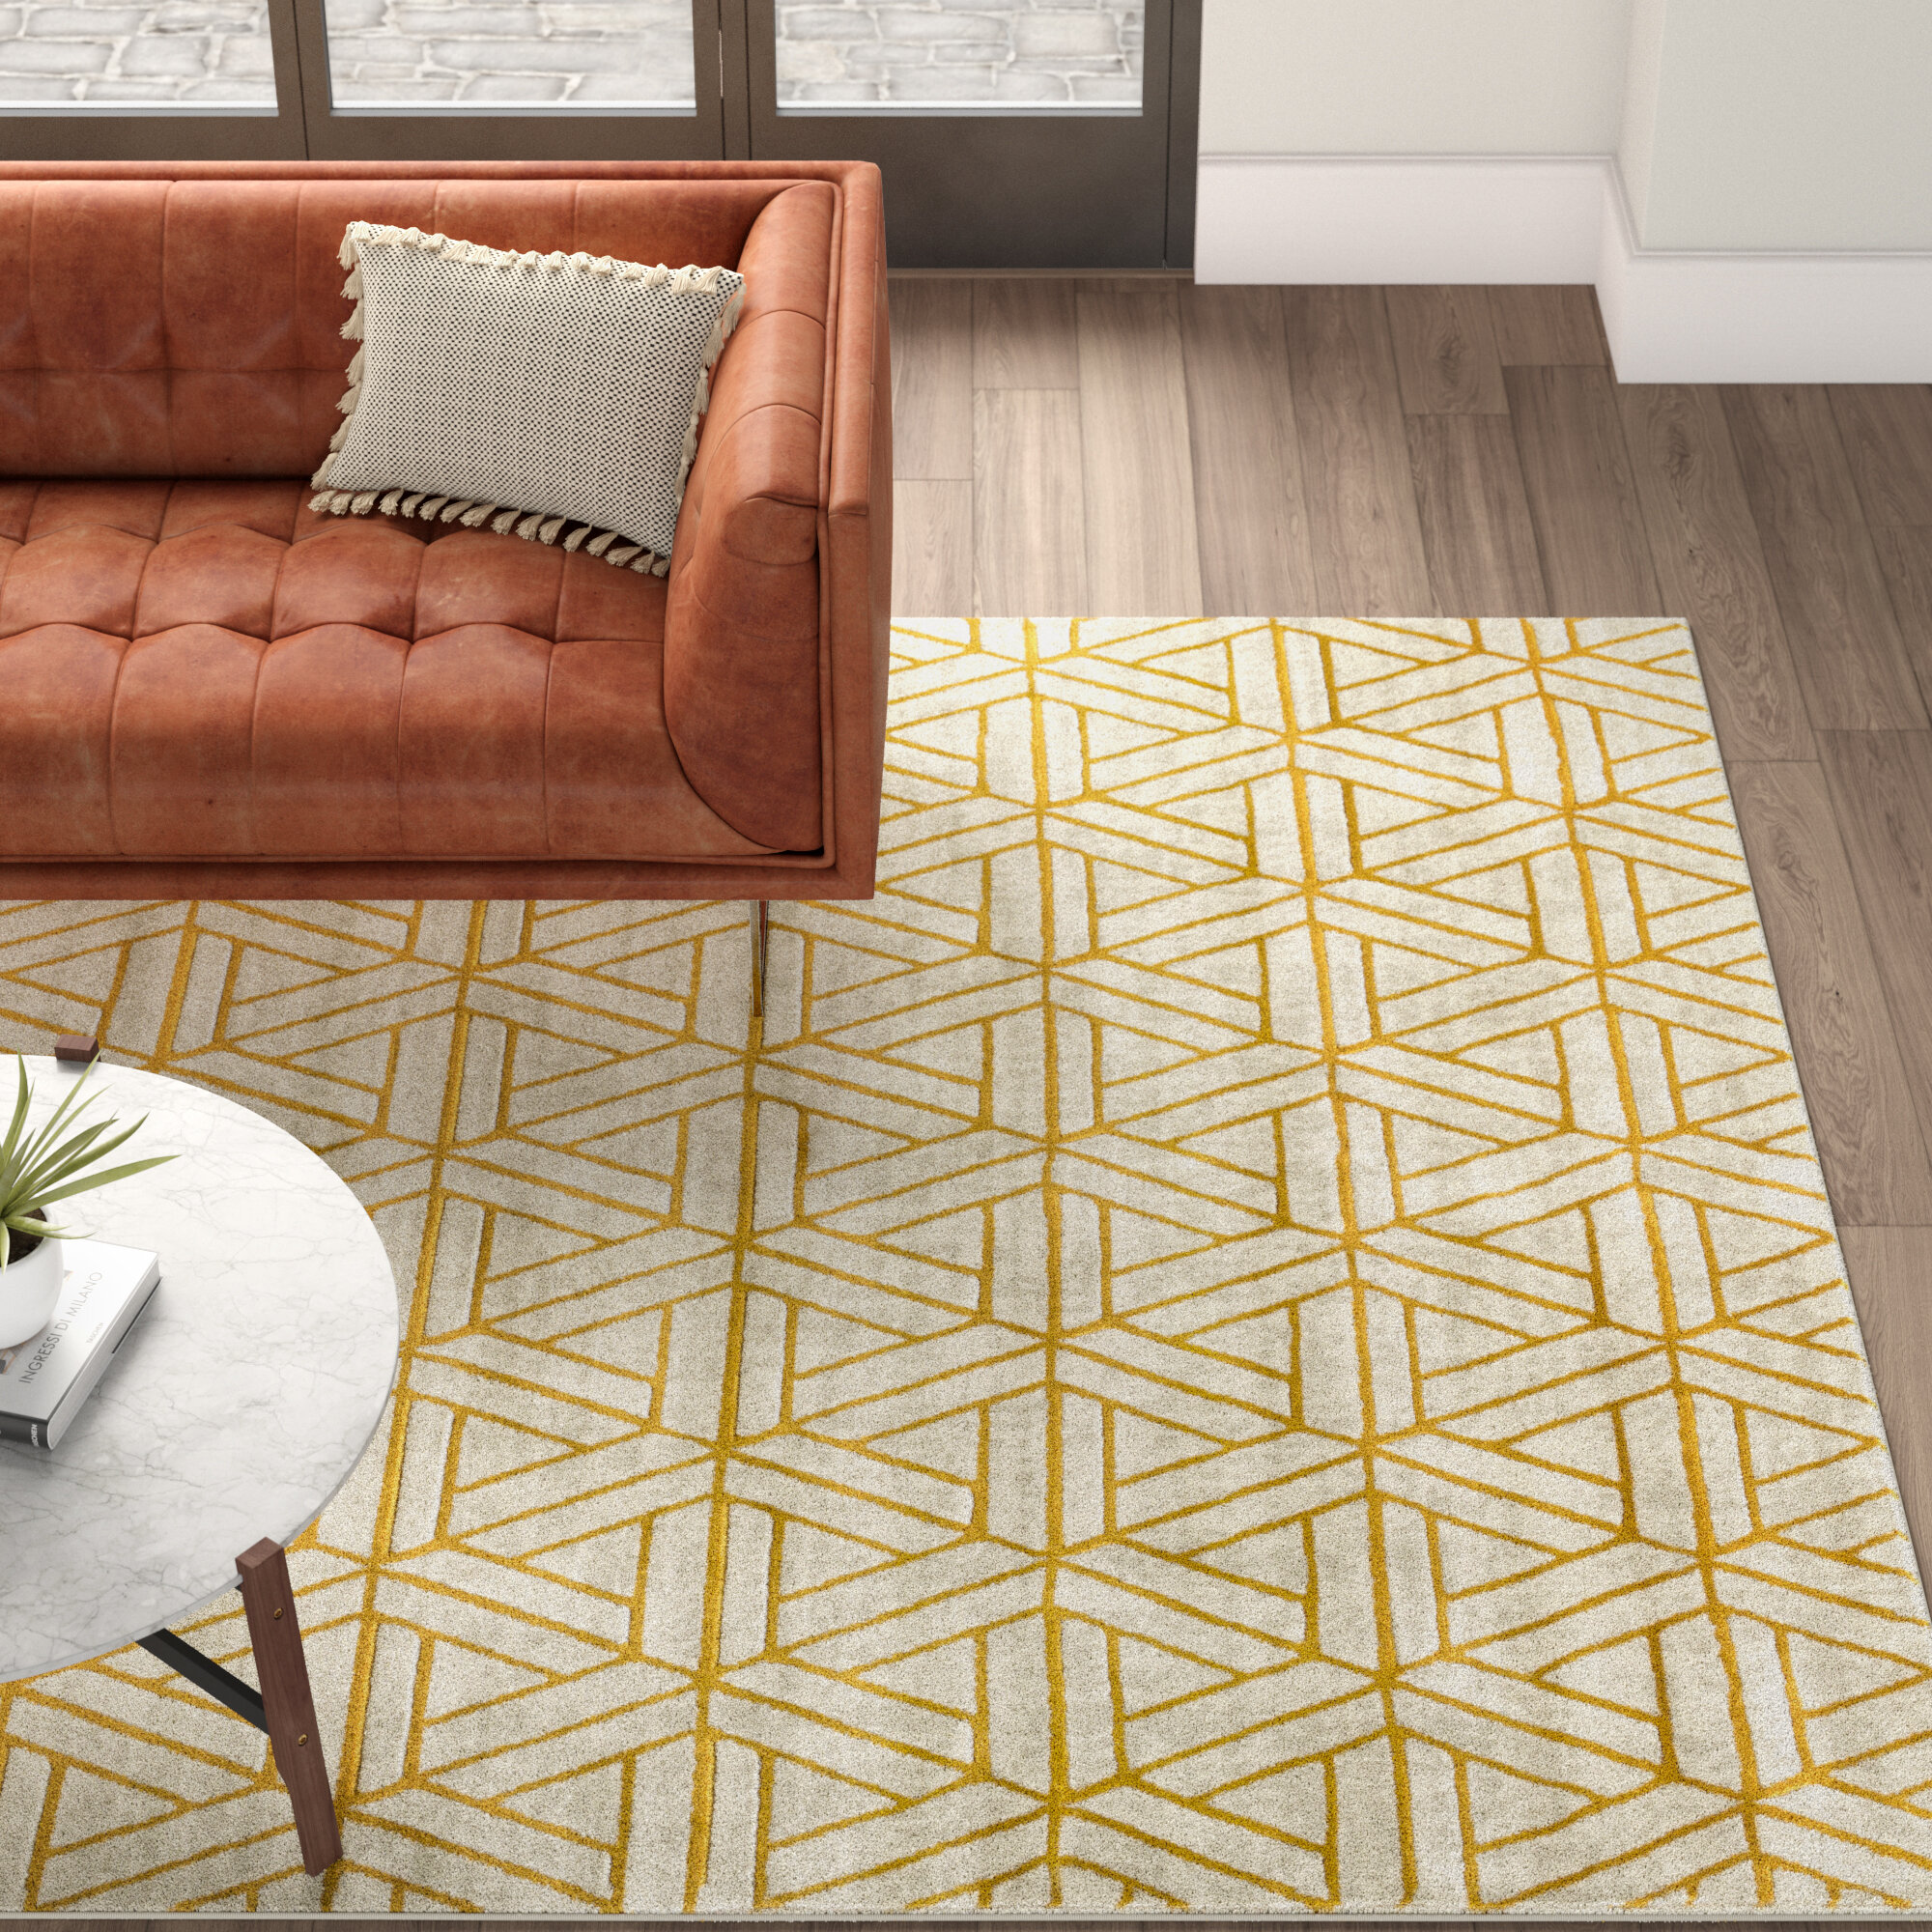 This Area Rug Has A Mix Of Transitional And Traditional Patterns In Woven Polypropylene With Hand Carving Accents